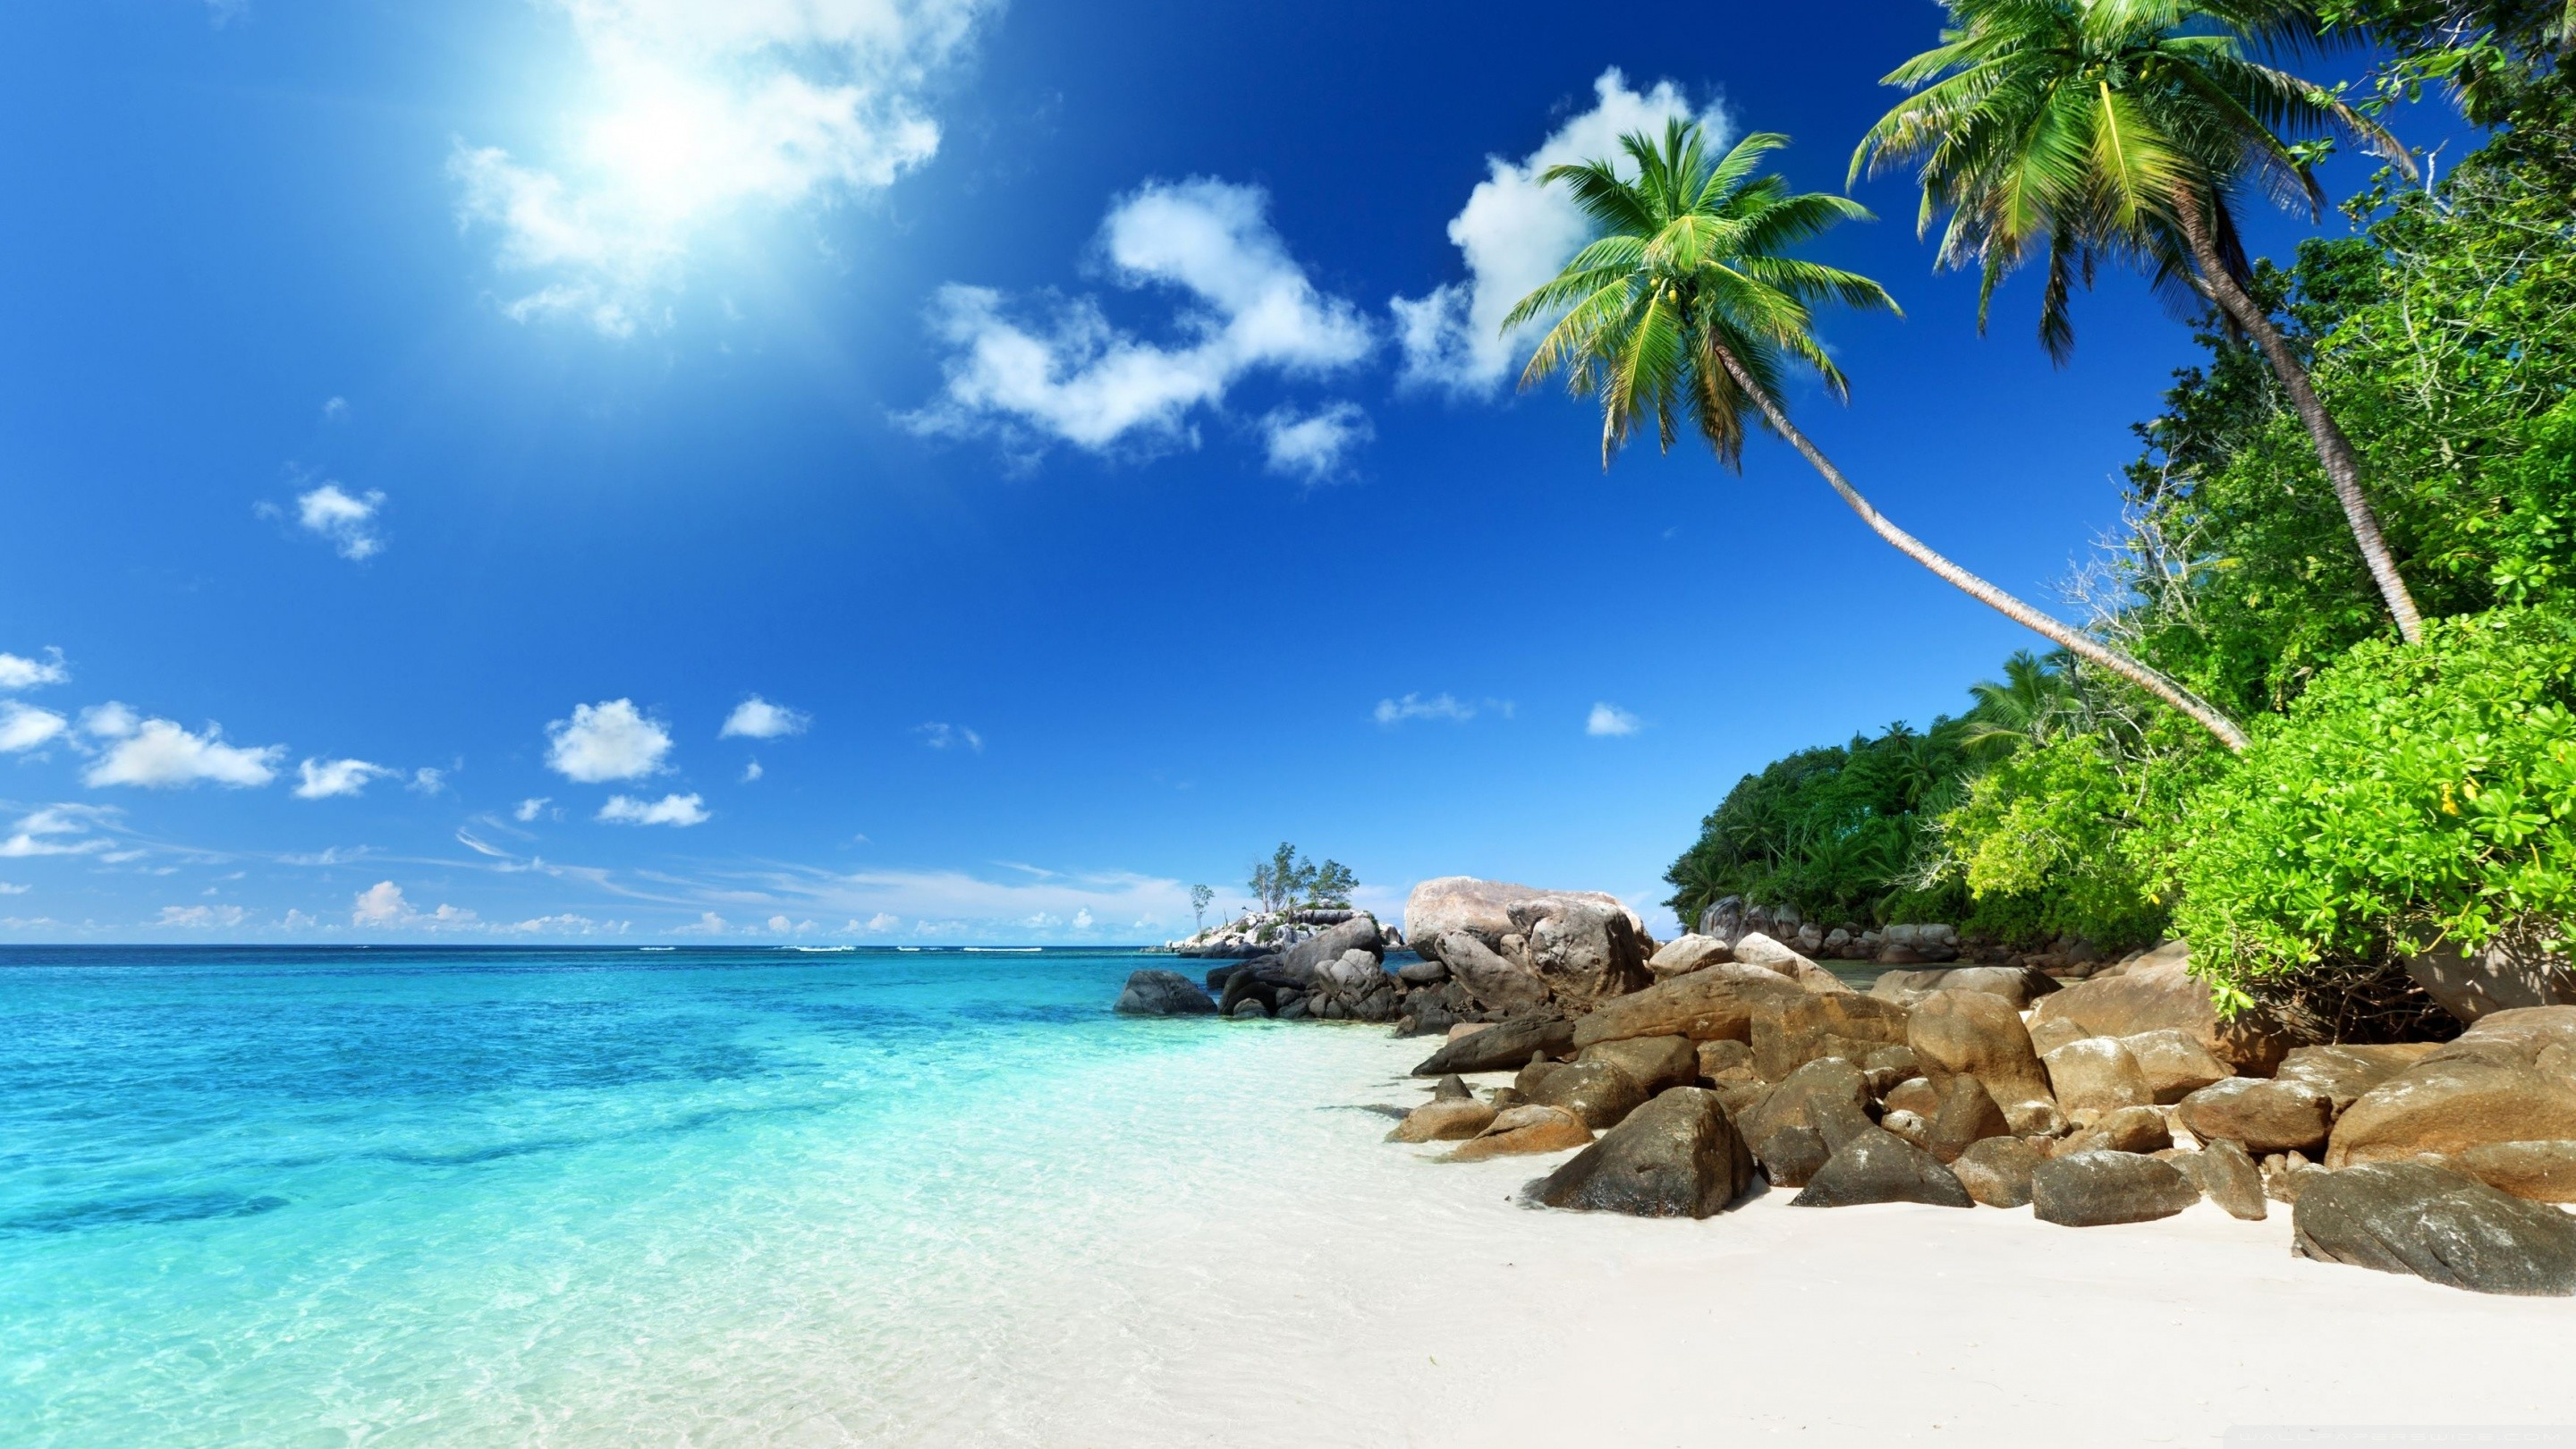 Hd Tropical Island Beach Paradise Wallpapers And Backgrounds: Paradise Beach Wallpapers (67+ Background Pictures